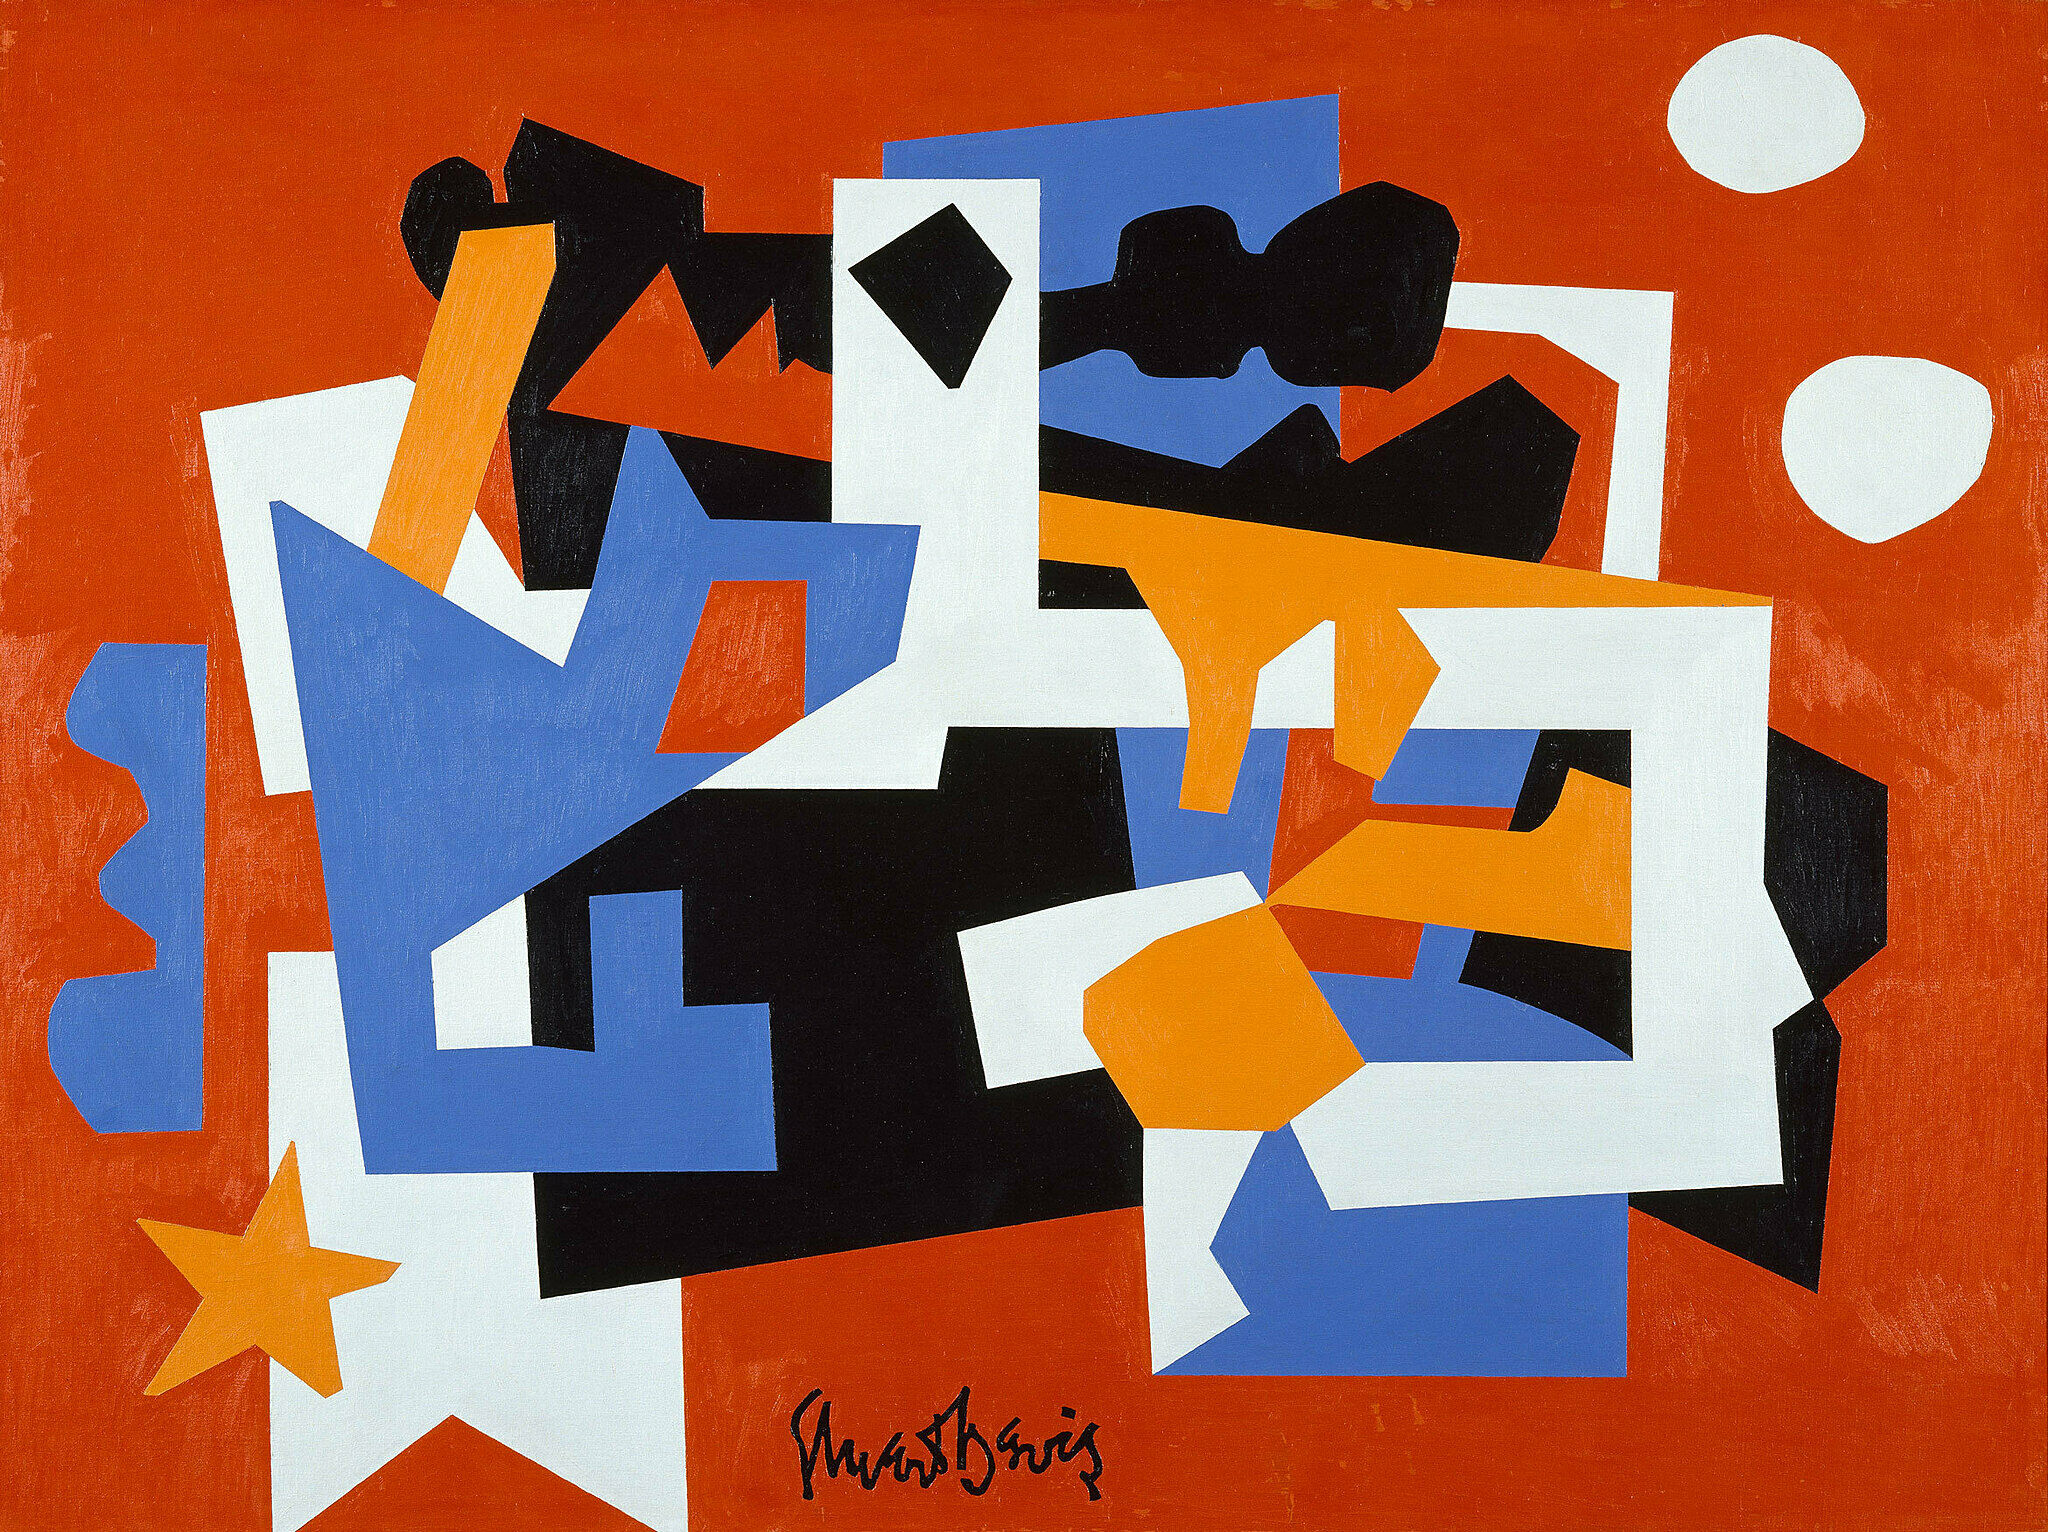 An artwork by Stuart Davis. An abstract, colorful view of a street scene